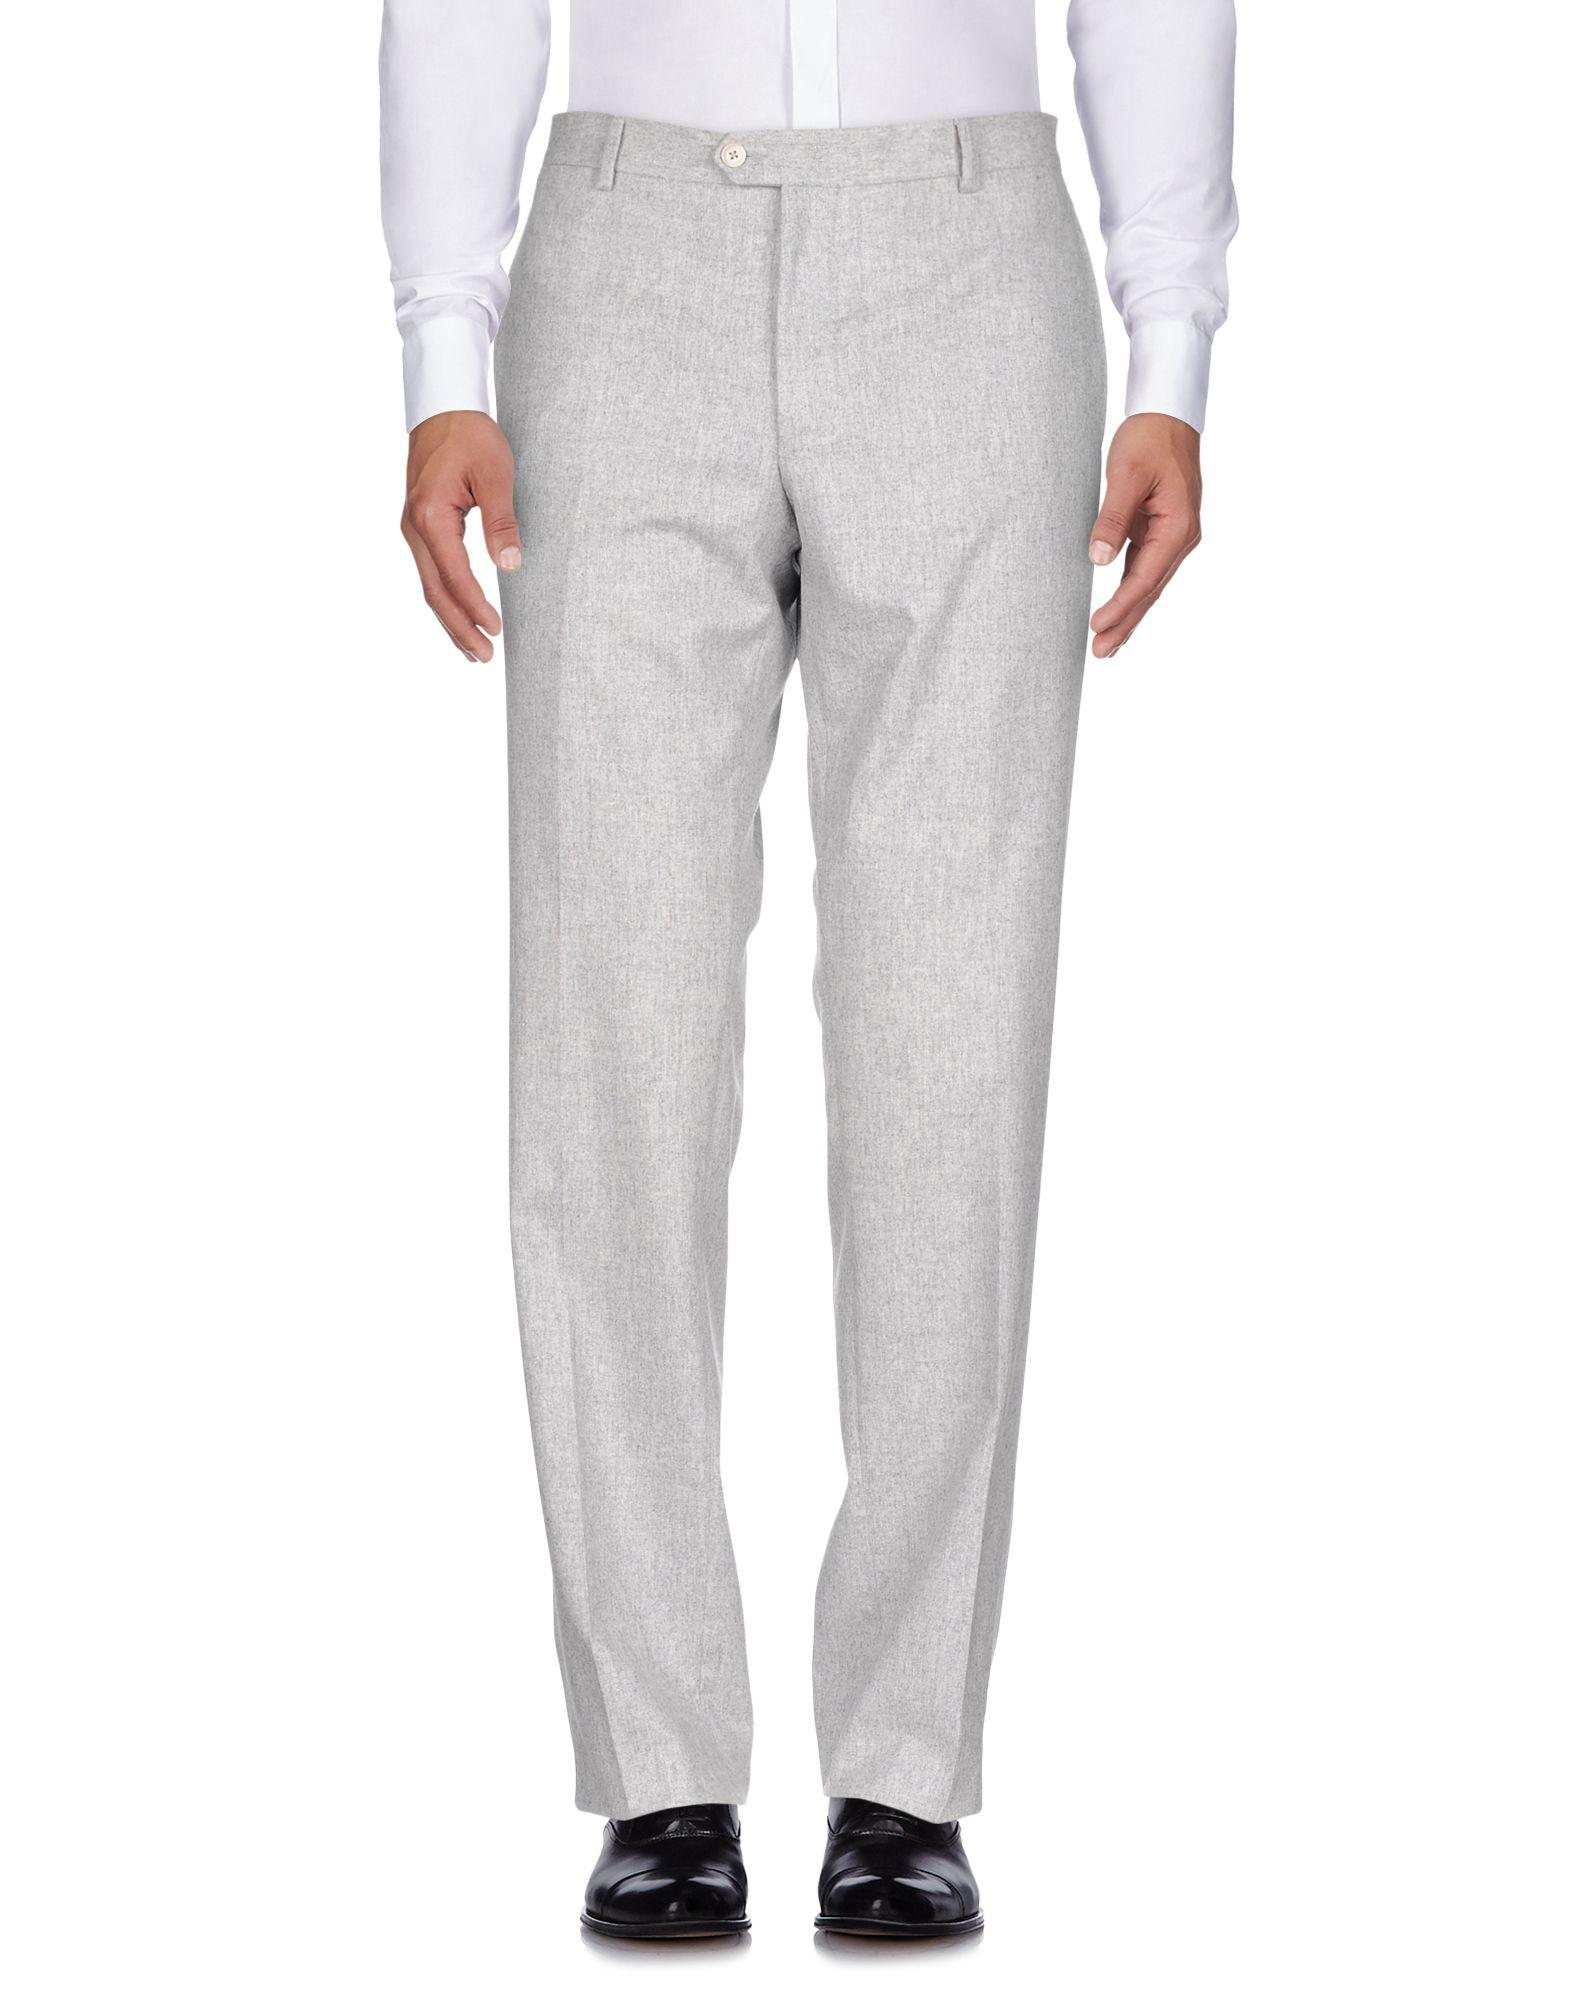 Buy Cheap Manchester Great Sale TROUSERS - Casual trousers Nardelli Clearance For Sale cNV1YI